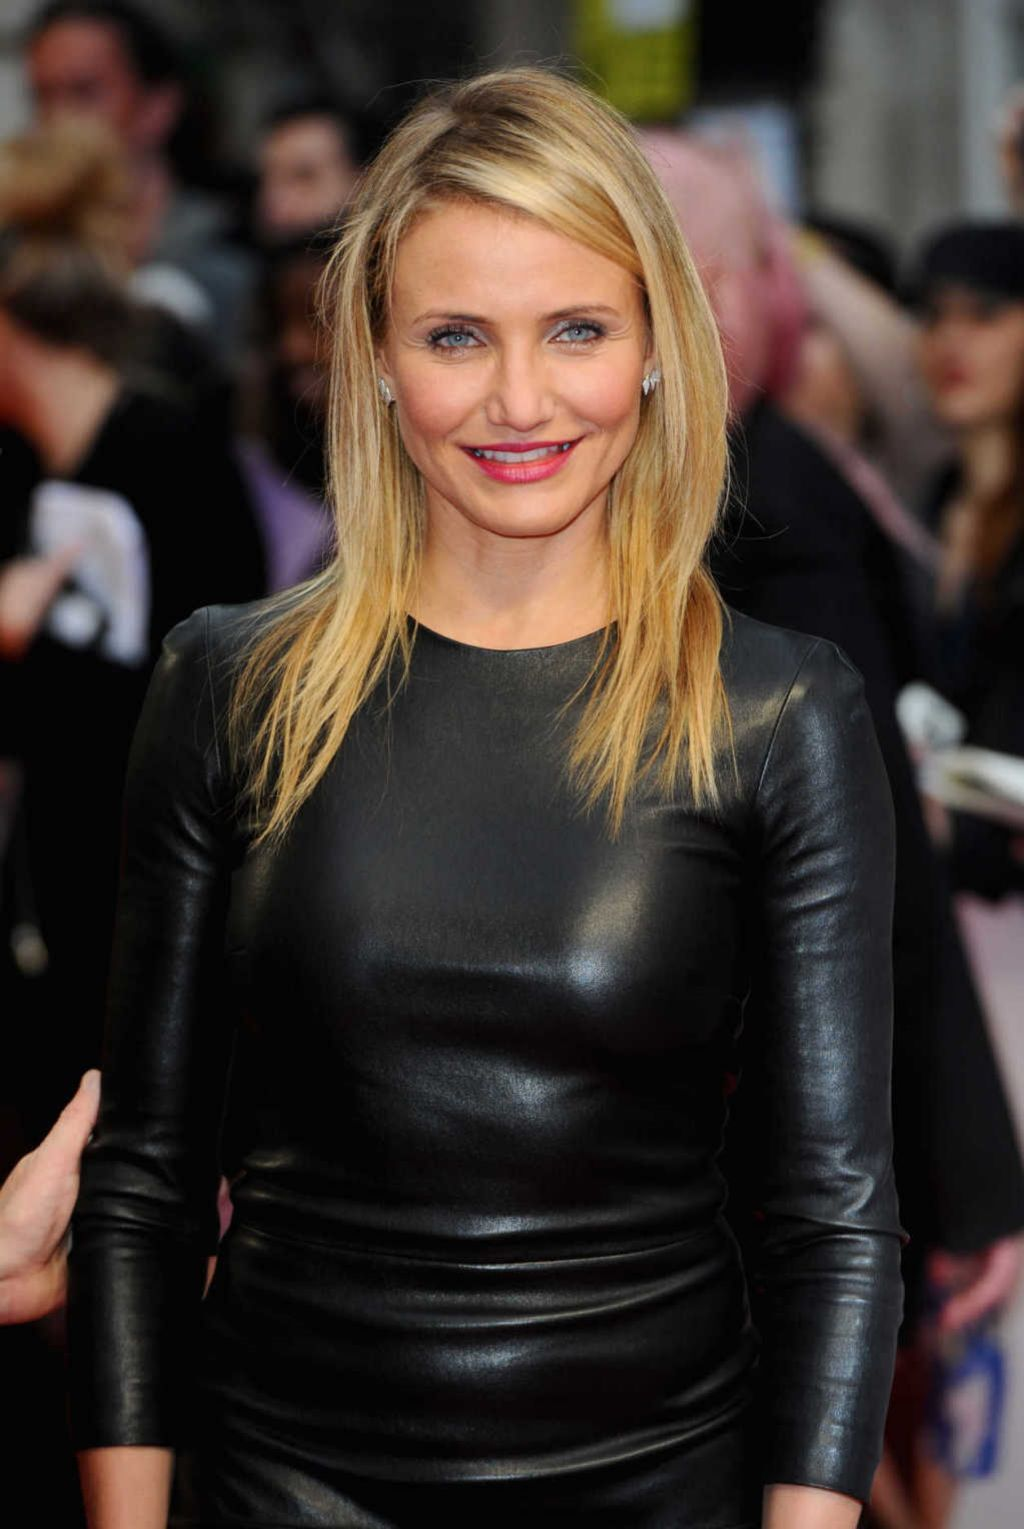 Cameron Diaz The Other Woman Premiere In London